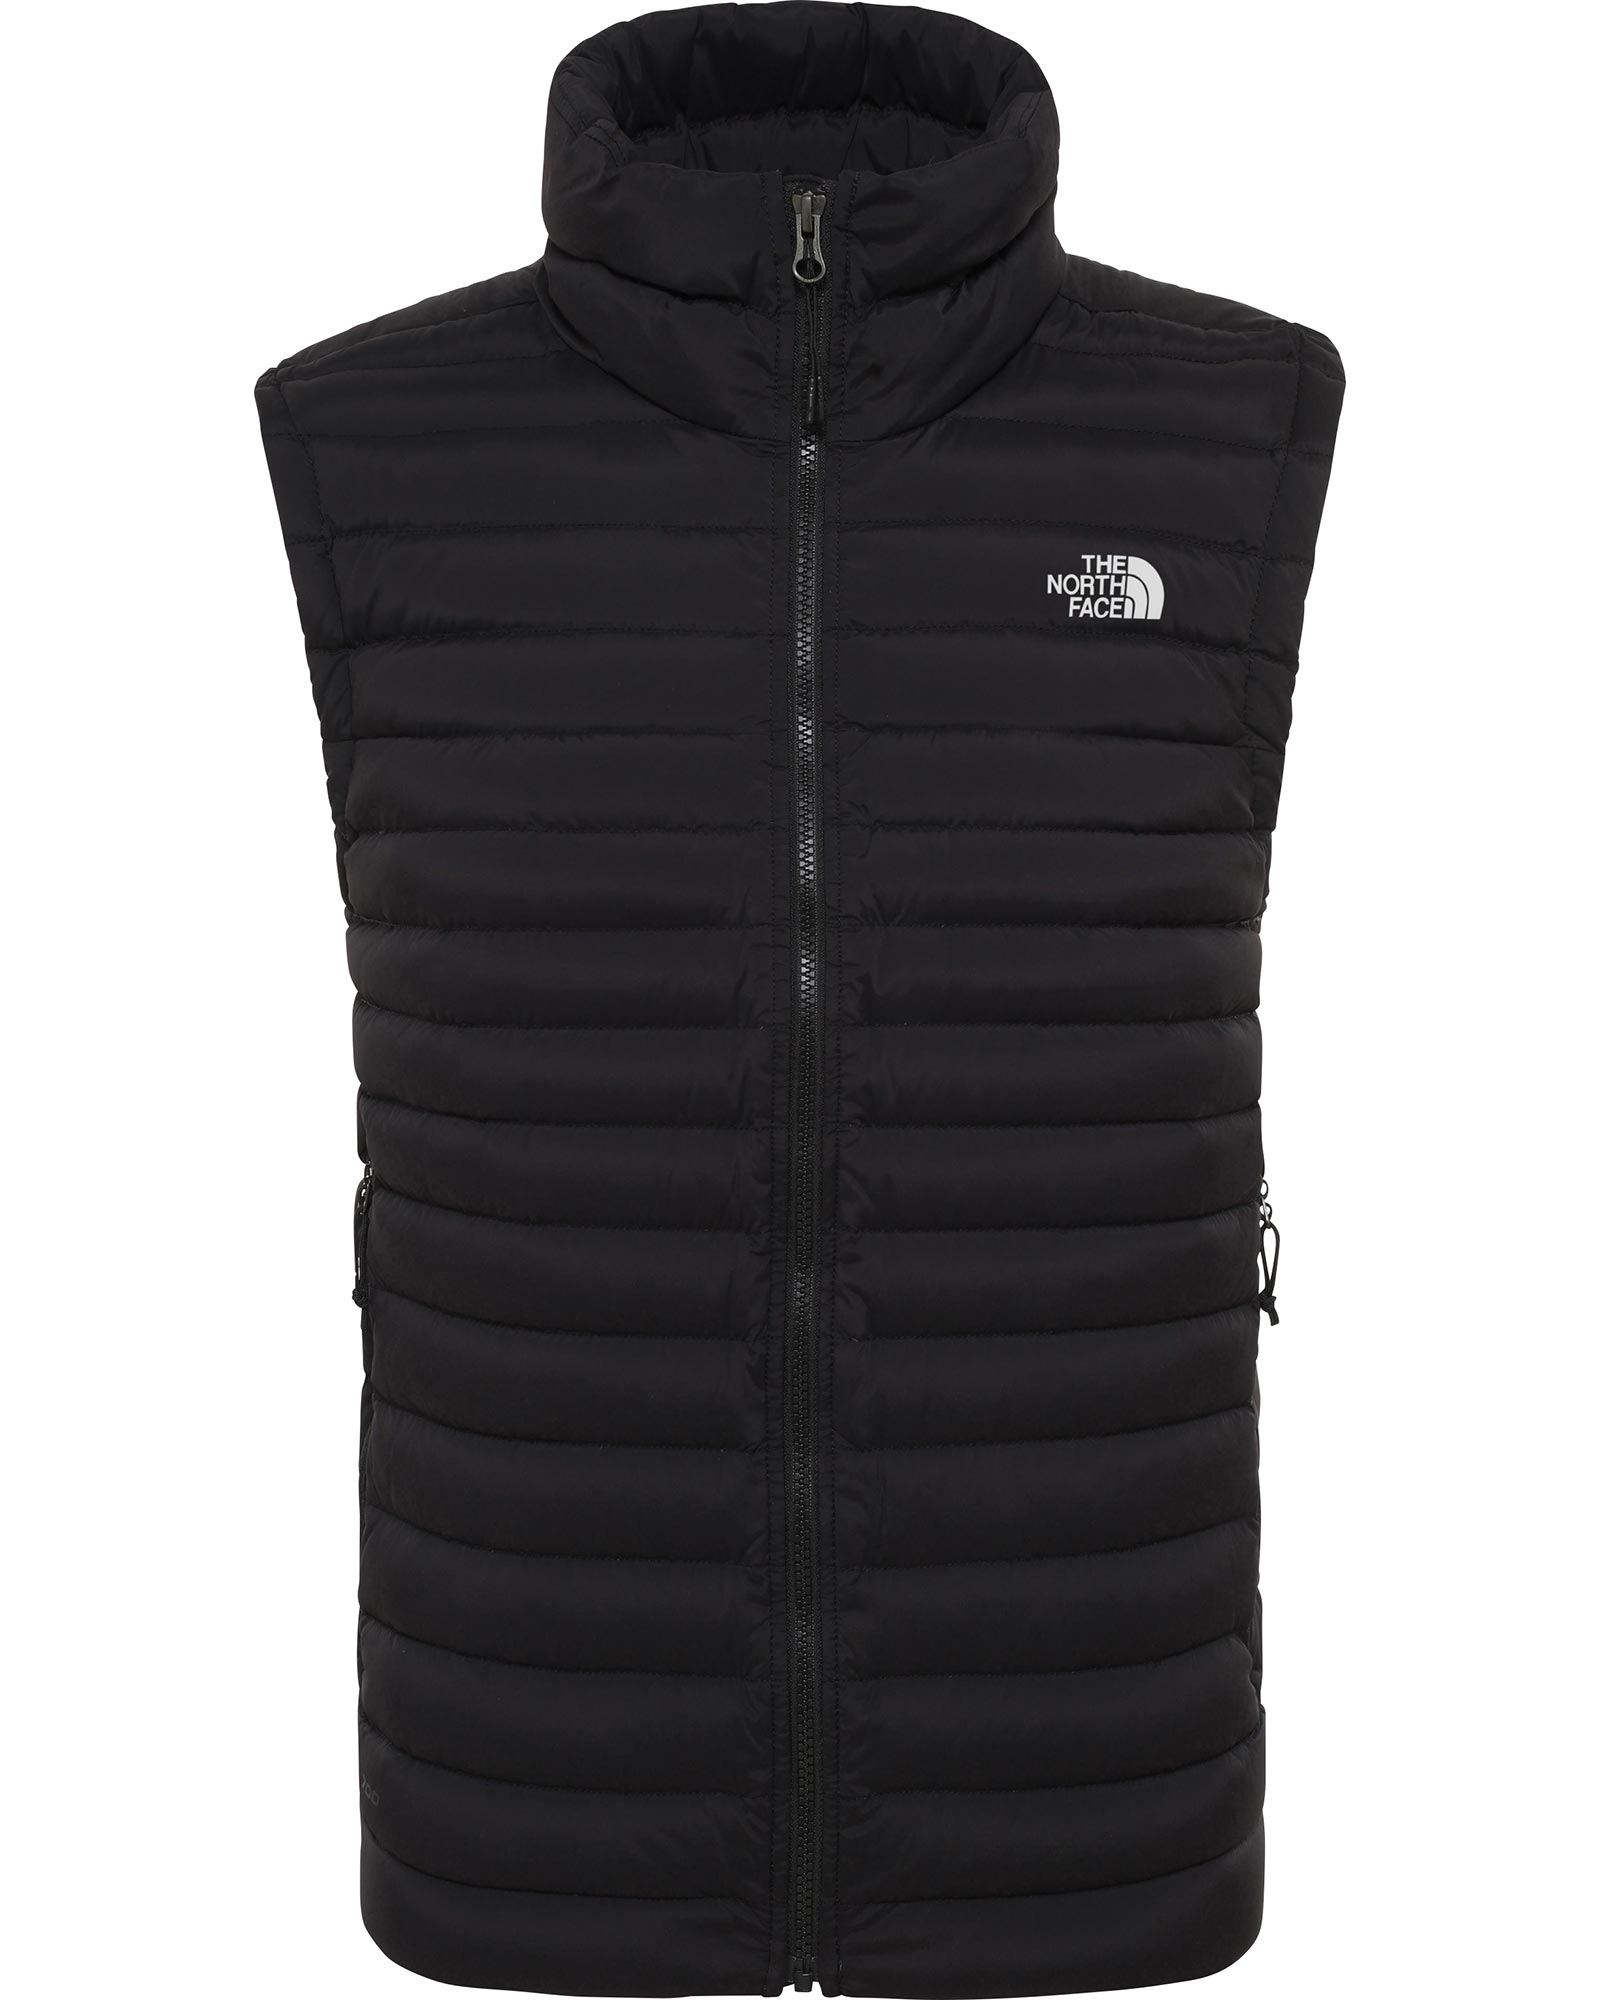 The North Face Womens Atlas Triclimate 3 In 1 Jacket